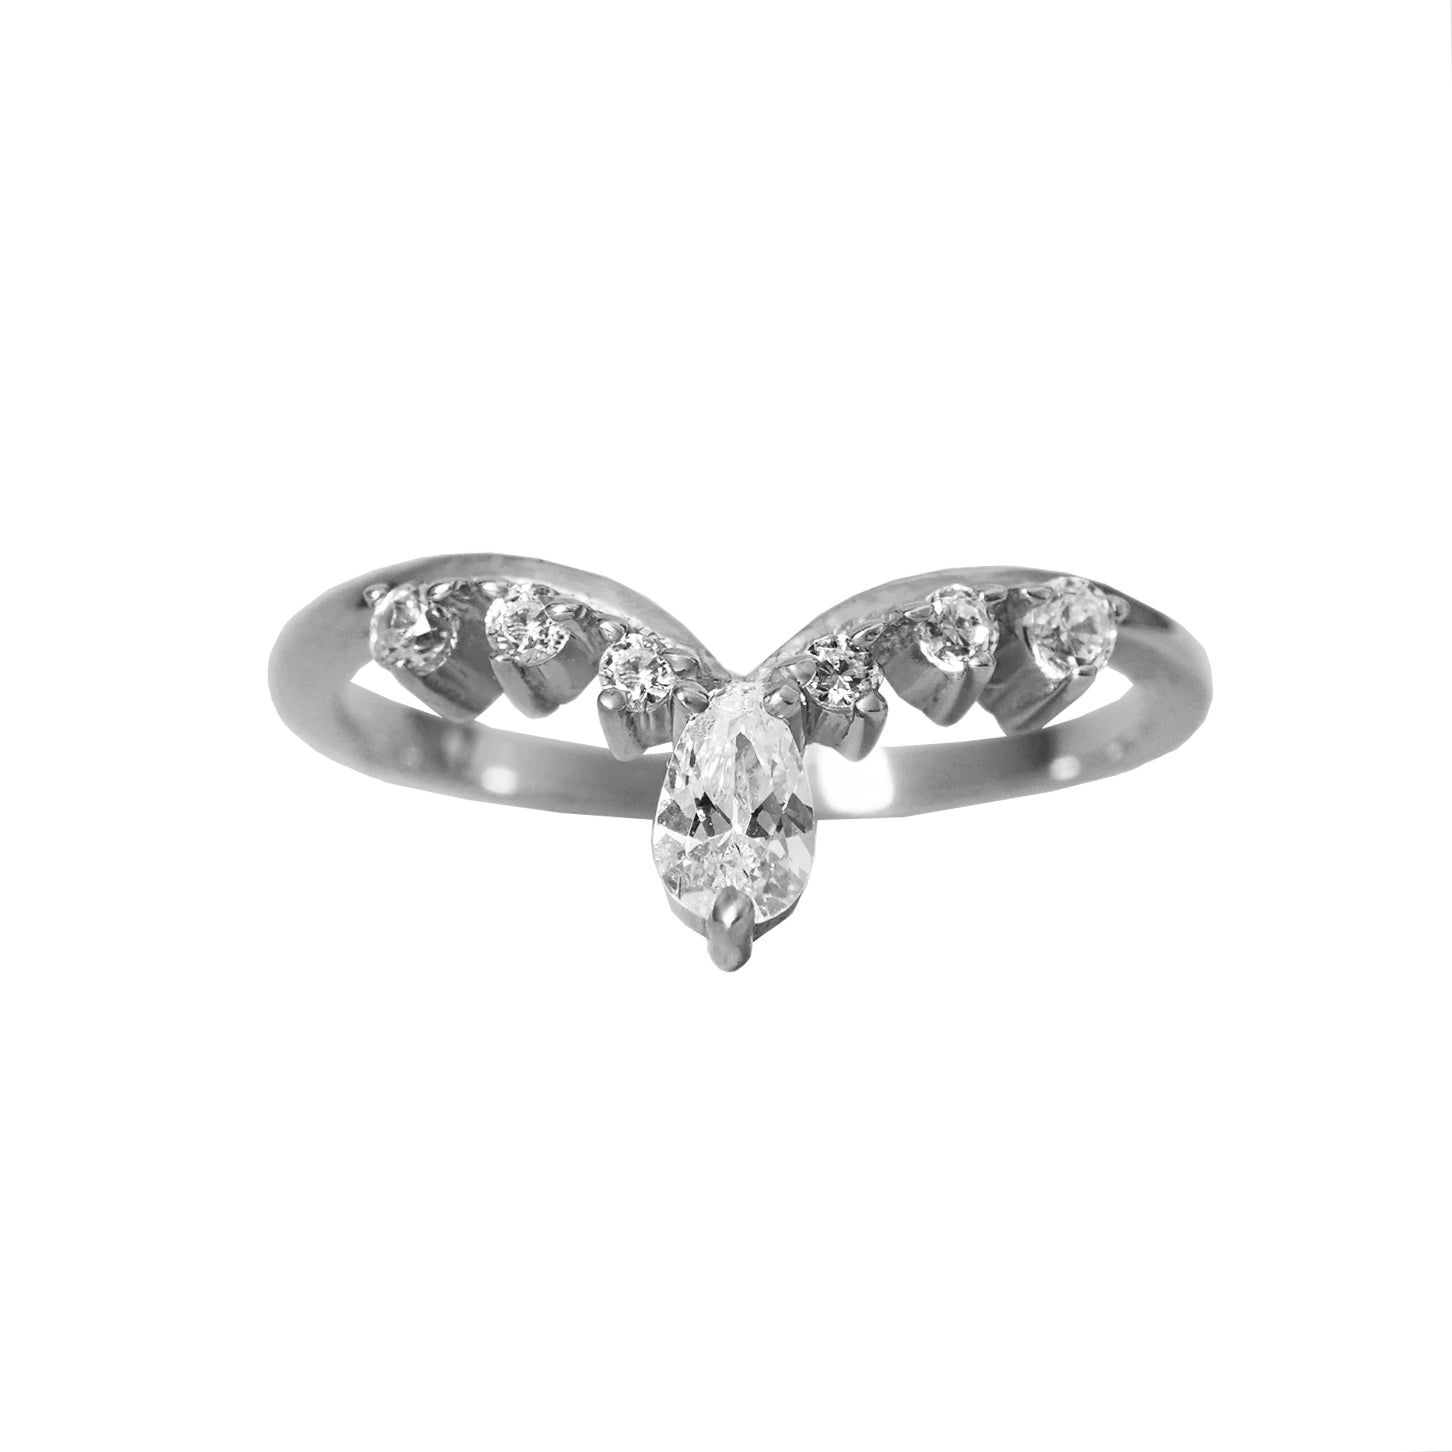 Diana Dainty Ring